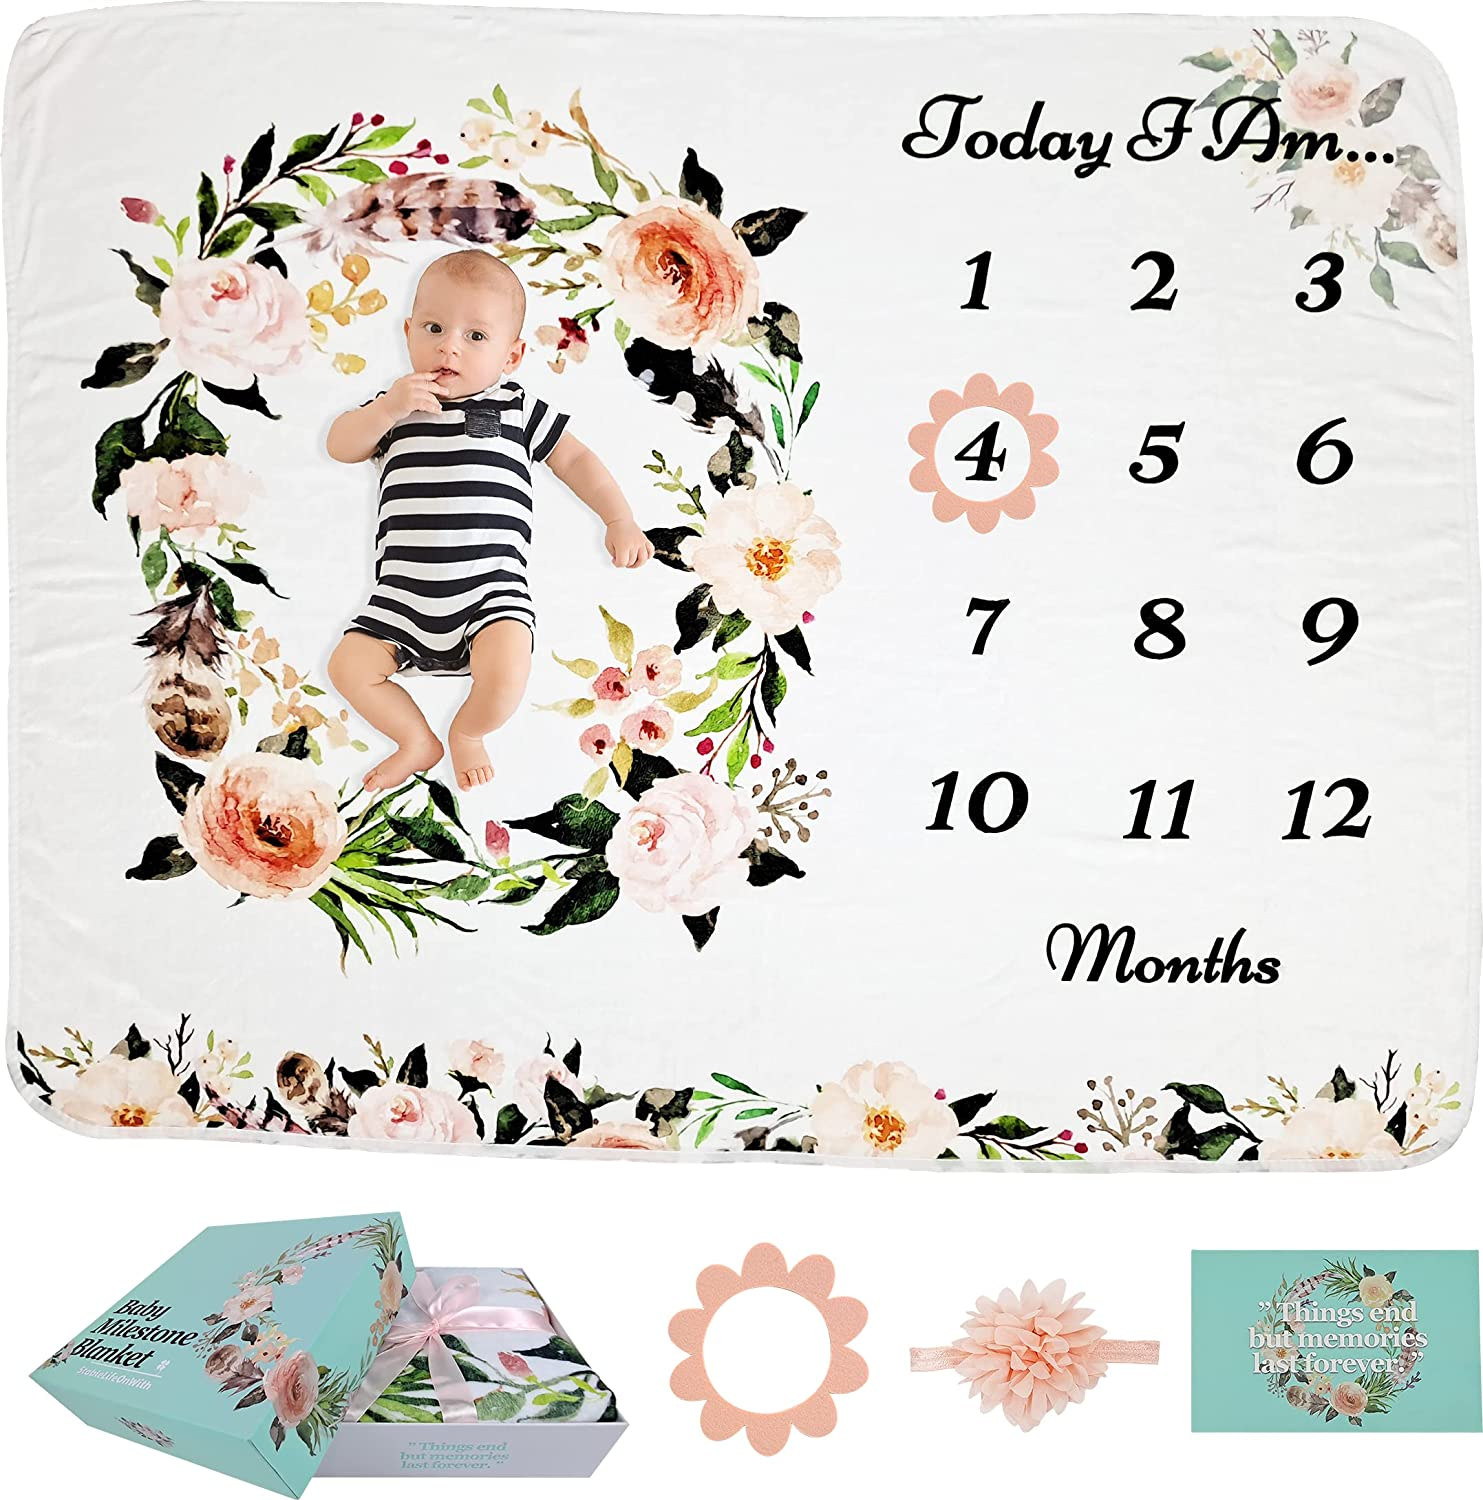 StableLifeOnWith Baby Monthly Milestone Blanket Girl or Boy - Baby Shower - Nursery Decor & Swaddle - Floral Blankets for Newborn Photo